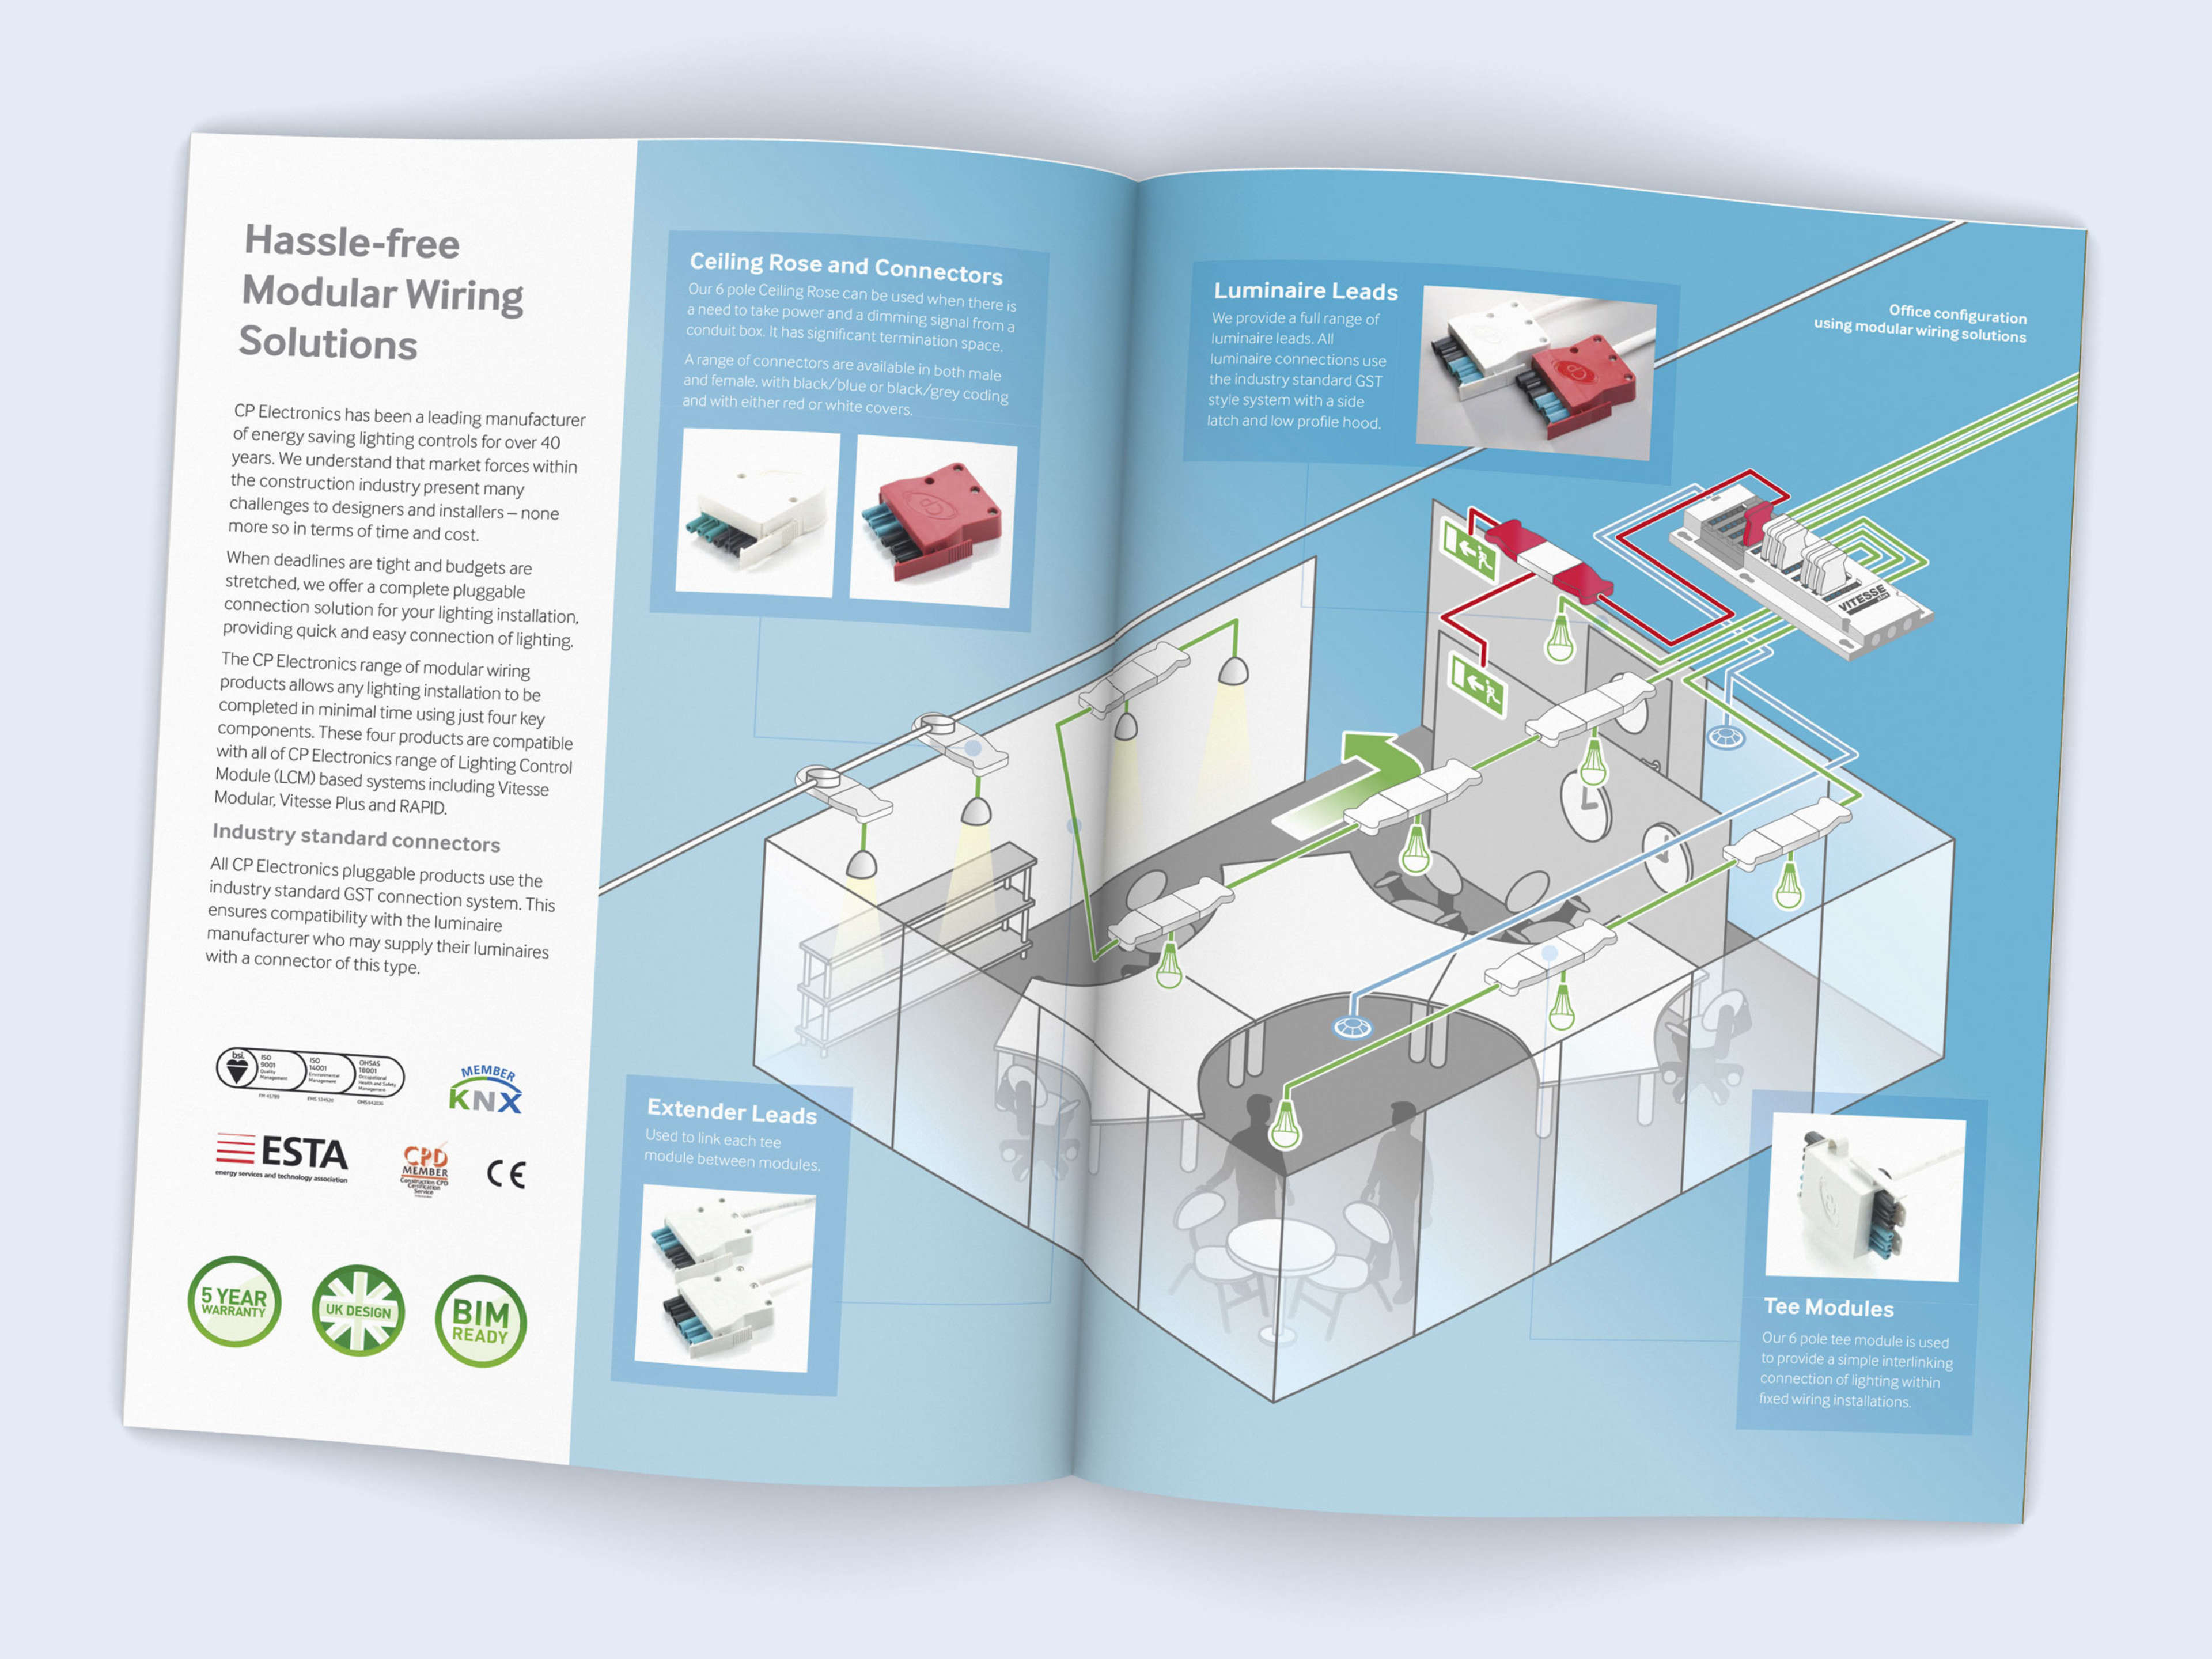 Modular Wiring Solutions Brochure Design For Cp Micrographix Ceiling Rose Electronics